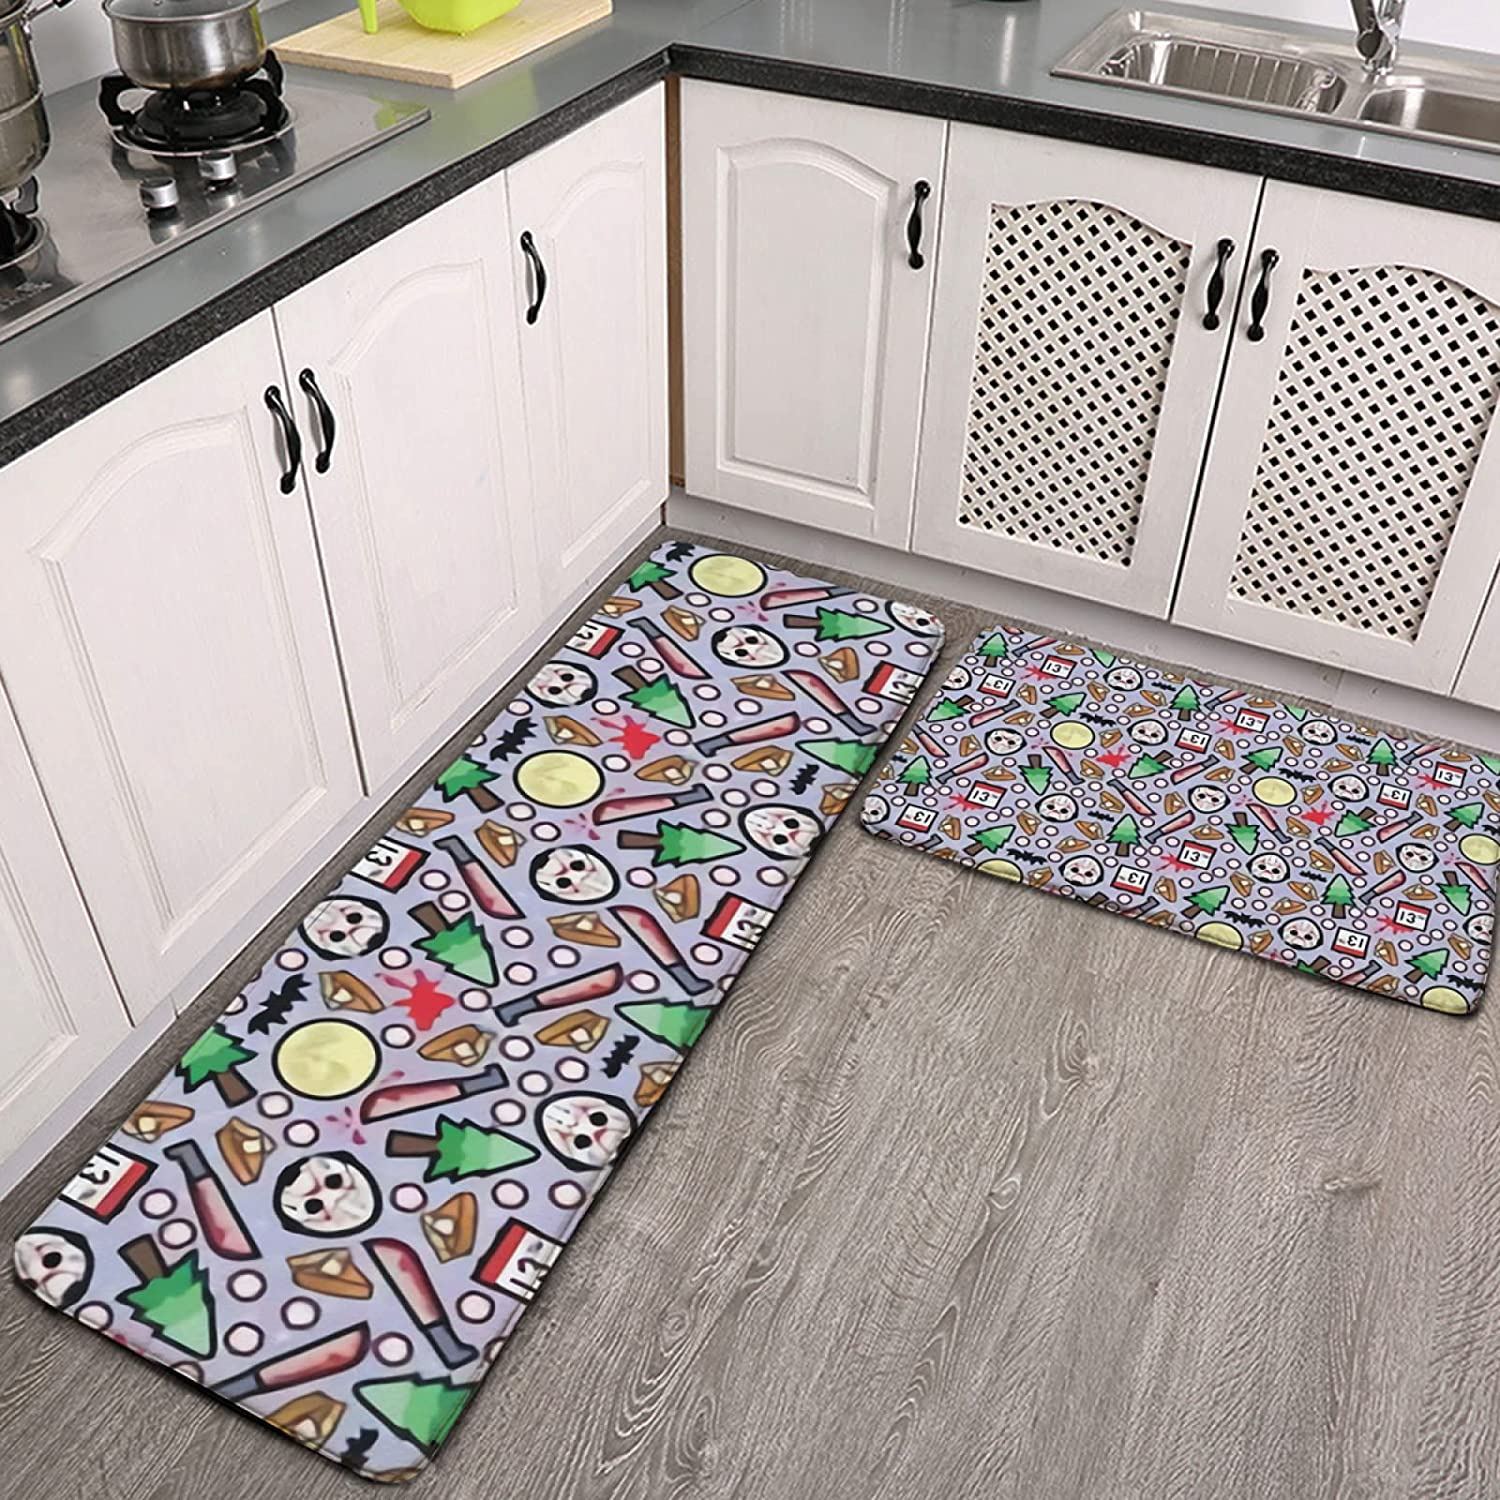 2 Piece Kitchen Floor Mats Soft Friday Non-Slip Absorbent Limited Max 48% OFF price Water